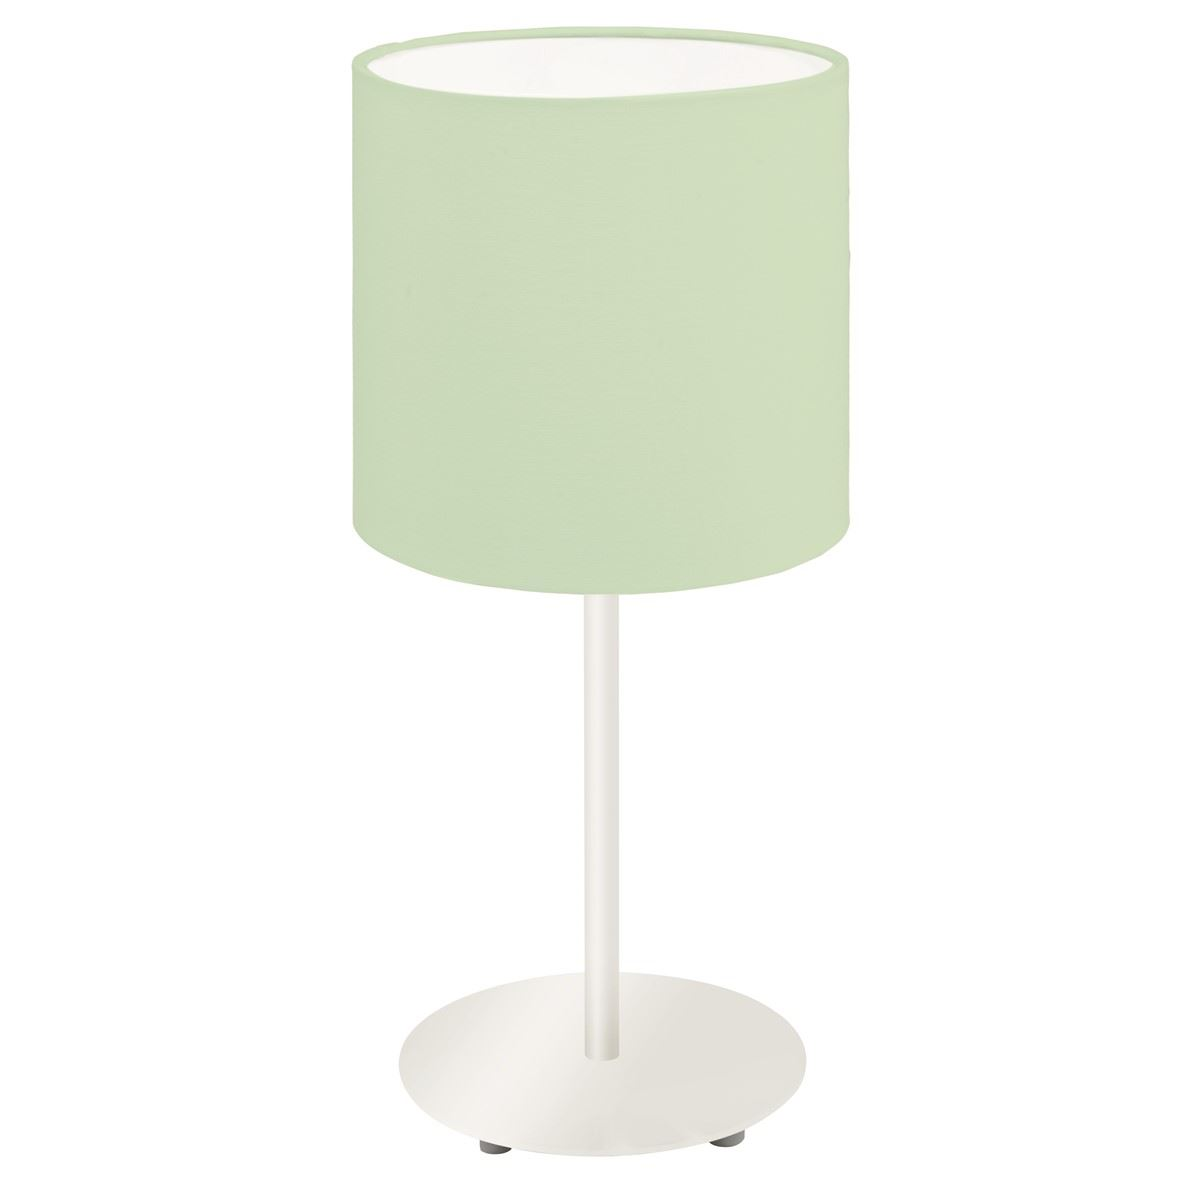 Silver Steel Table Lamp With Green Fabric Shade E27 Holder 60W